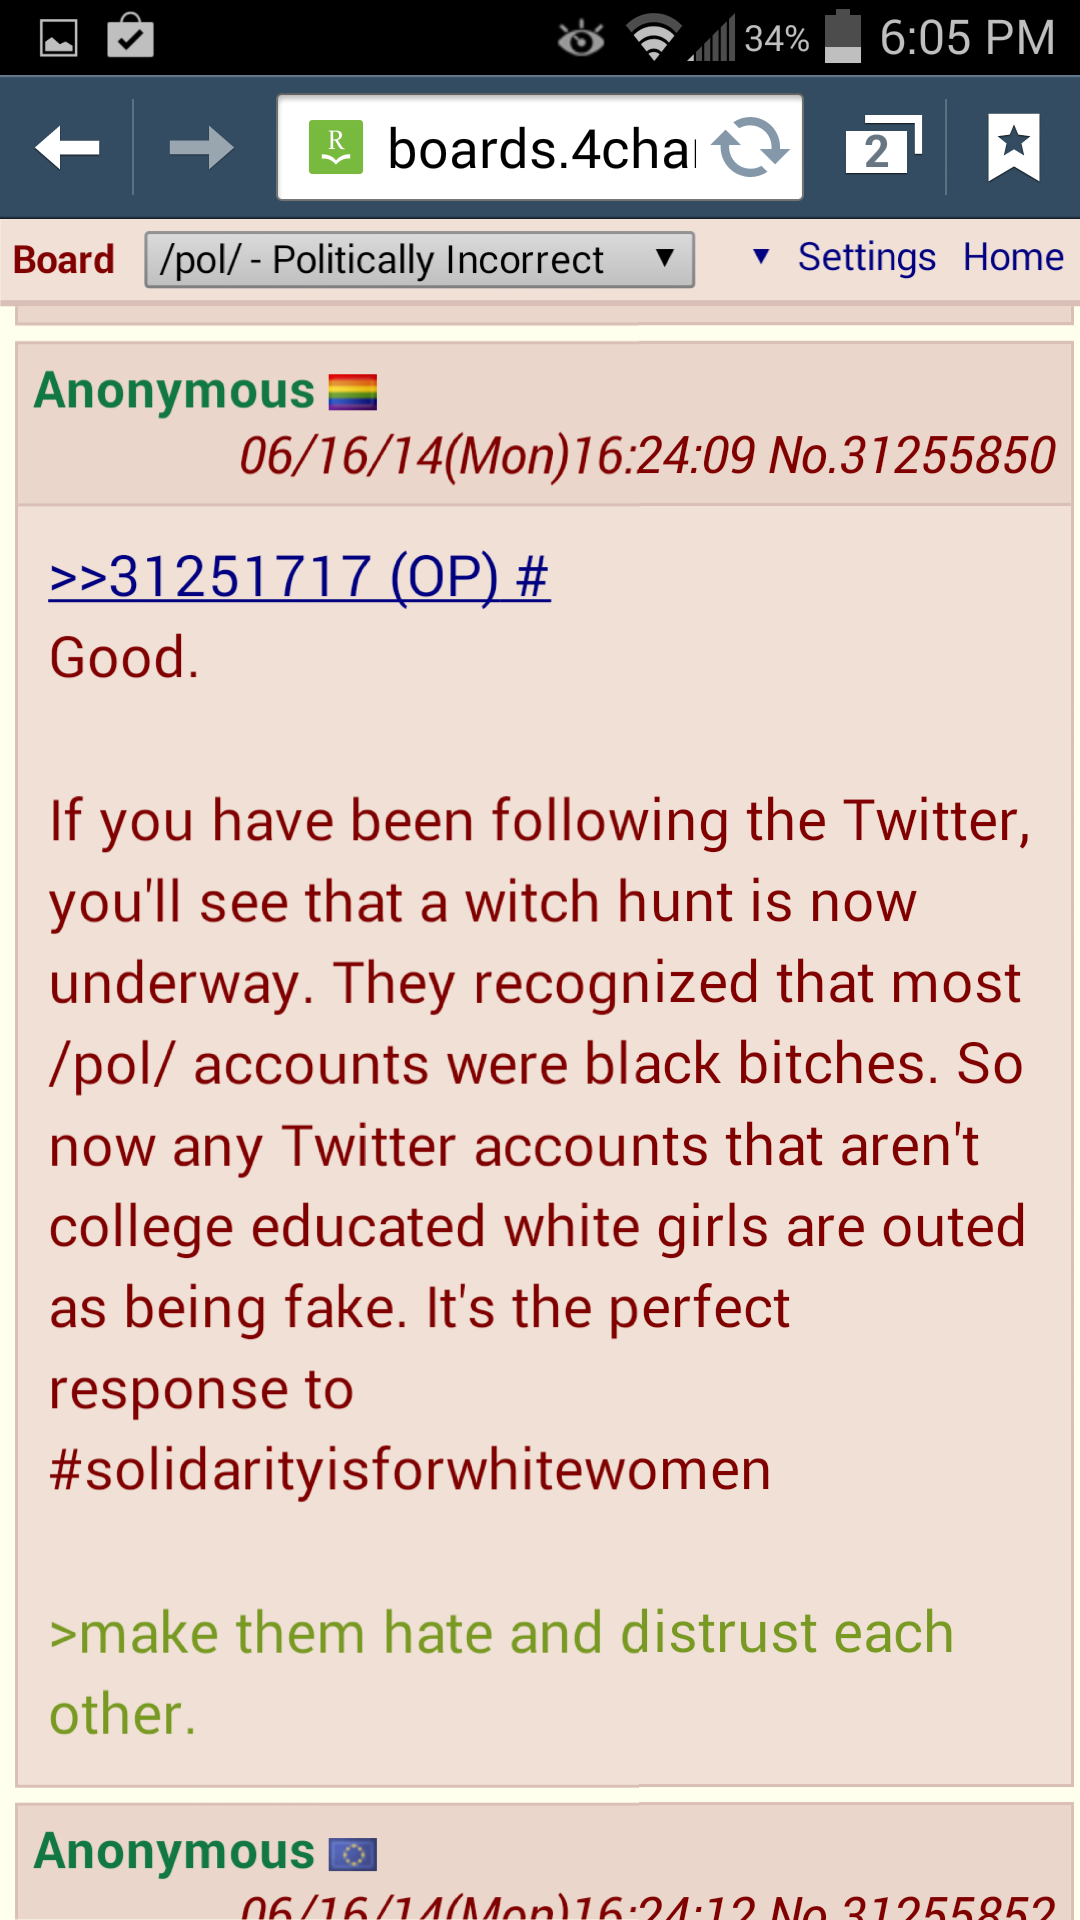 A 4chan comment: 'Good. If you have been following the Twitter, you'll see that a witch hunt is now underway. They recognized that most /pol/ accounts were black bitches. So now any Twitter accounts that aren't college educated white girls are outed as being fake. It's the perfect response to #solidarityisforwhitewomen.'